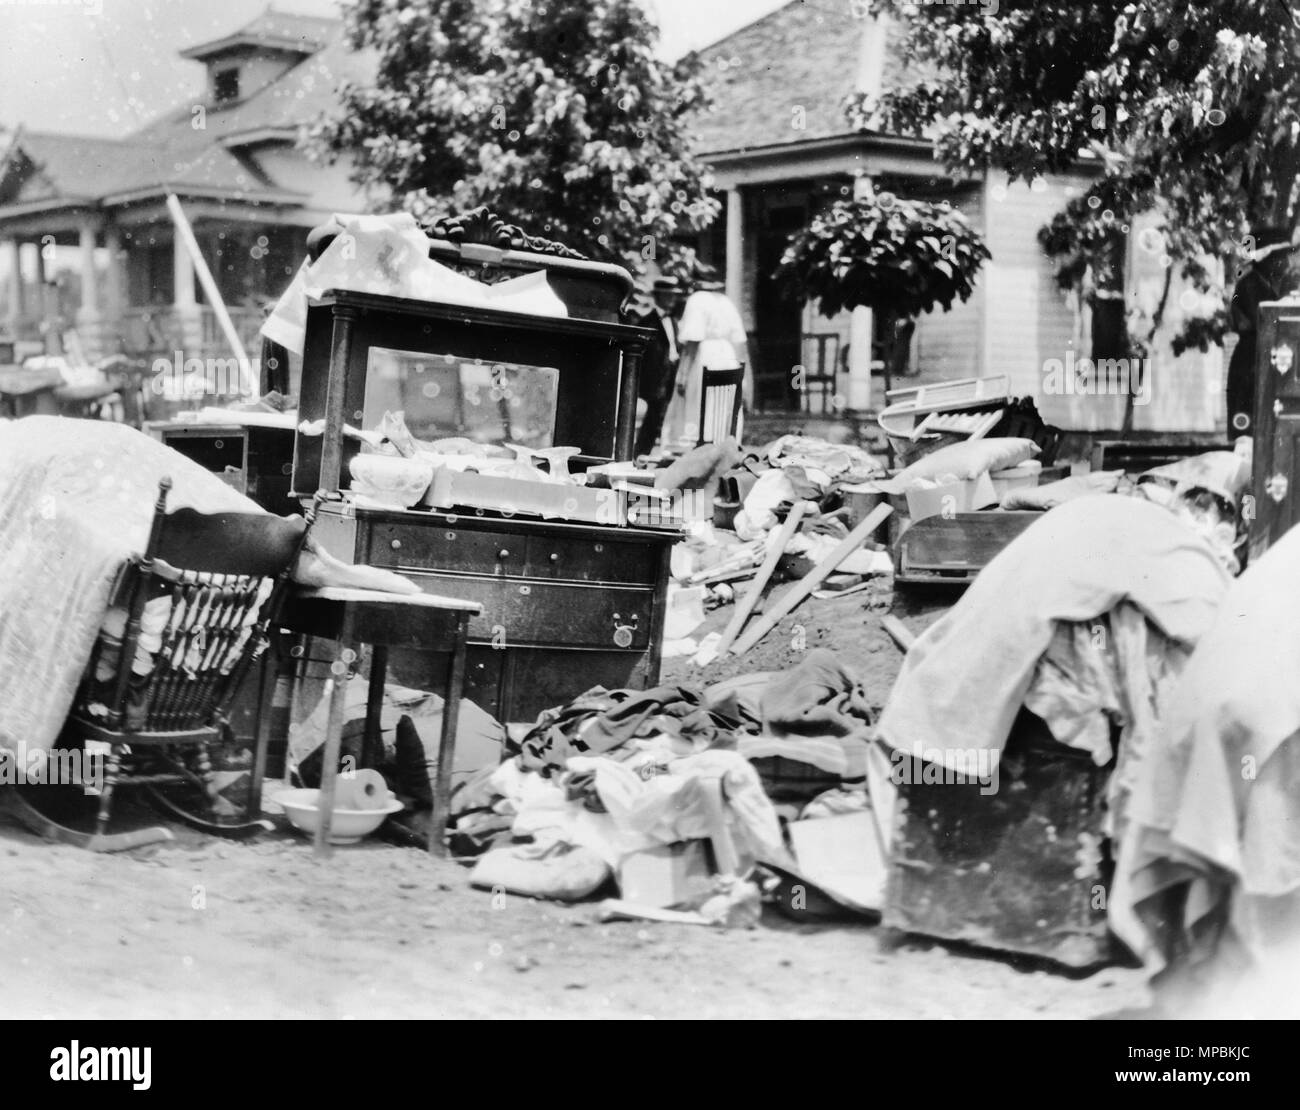 Furniture in street during race riot, probably due to eviction, Tulsa, Oklahoma, 1921 - Stock Image